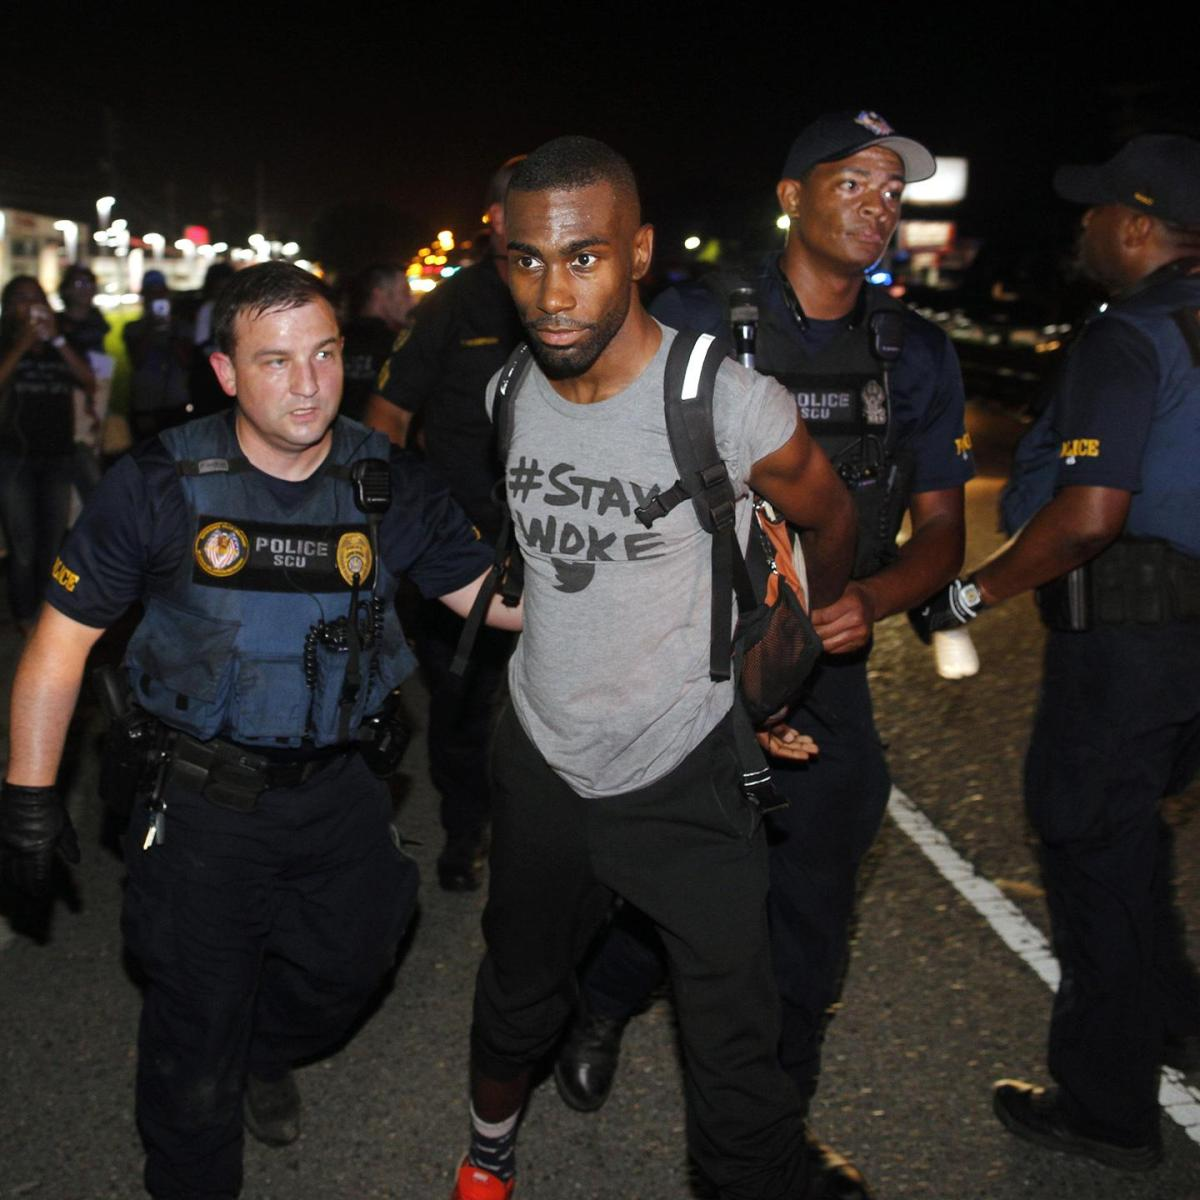 deray-mckesson-live-streamed-his-arrest-during-a-blacklivesmatter-protest-in-baton-rouge-1468167440